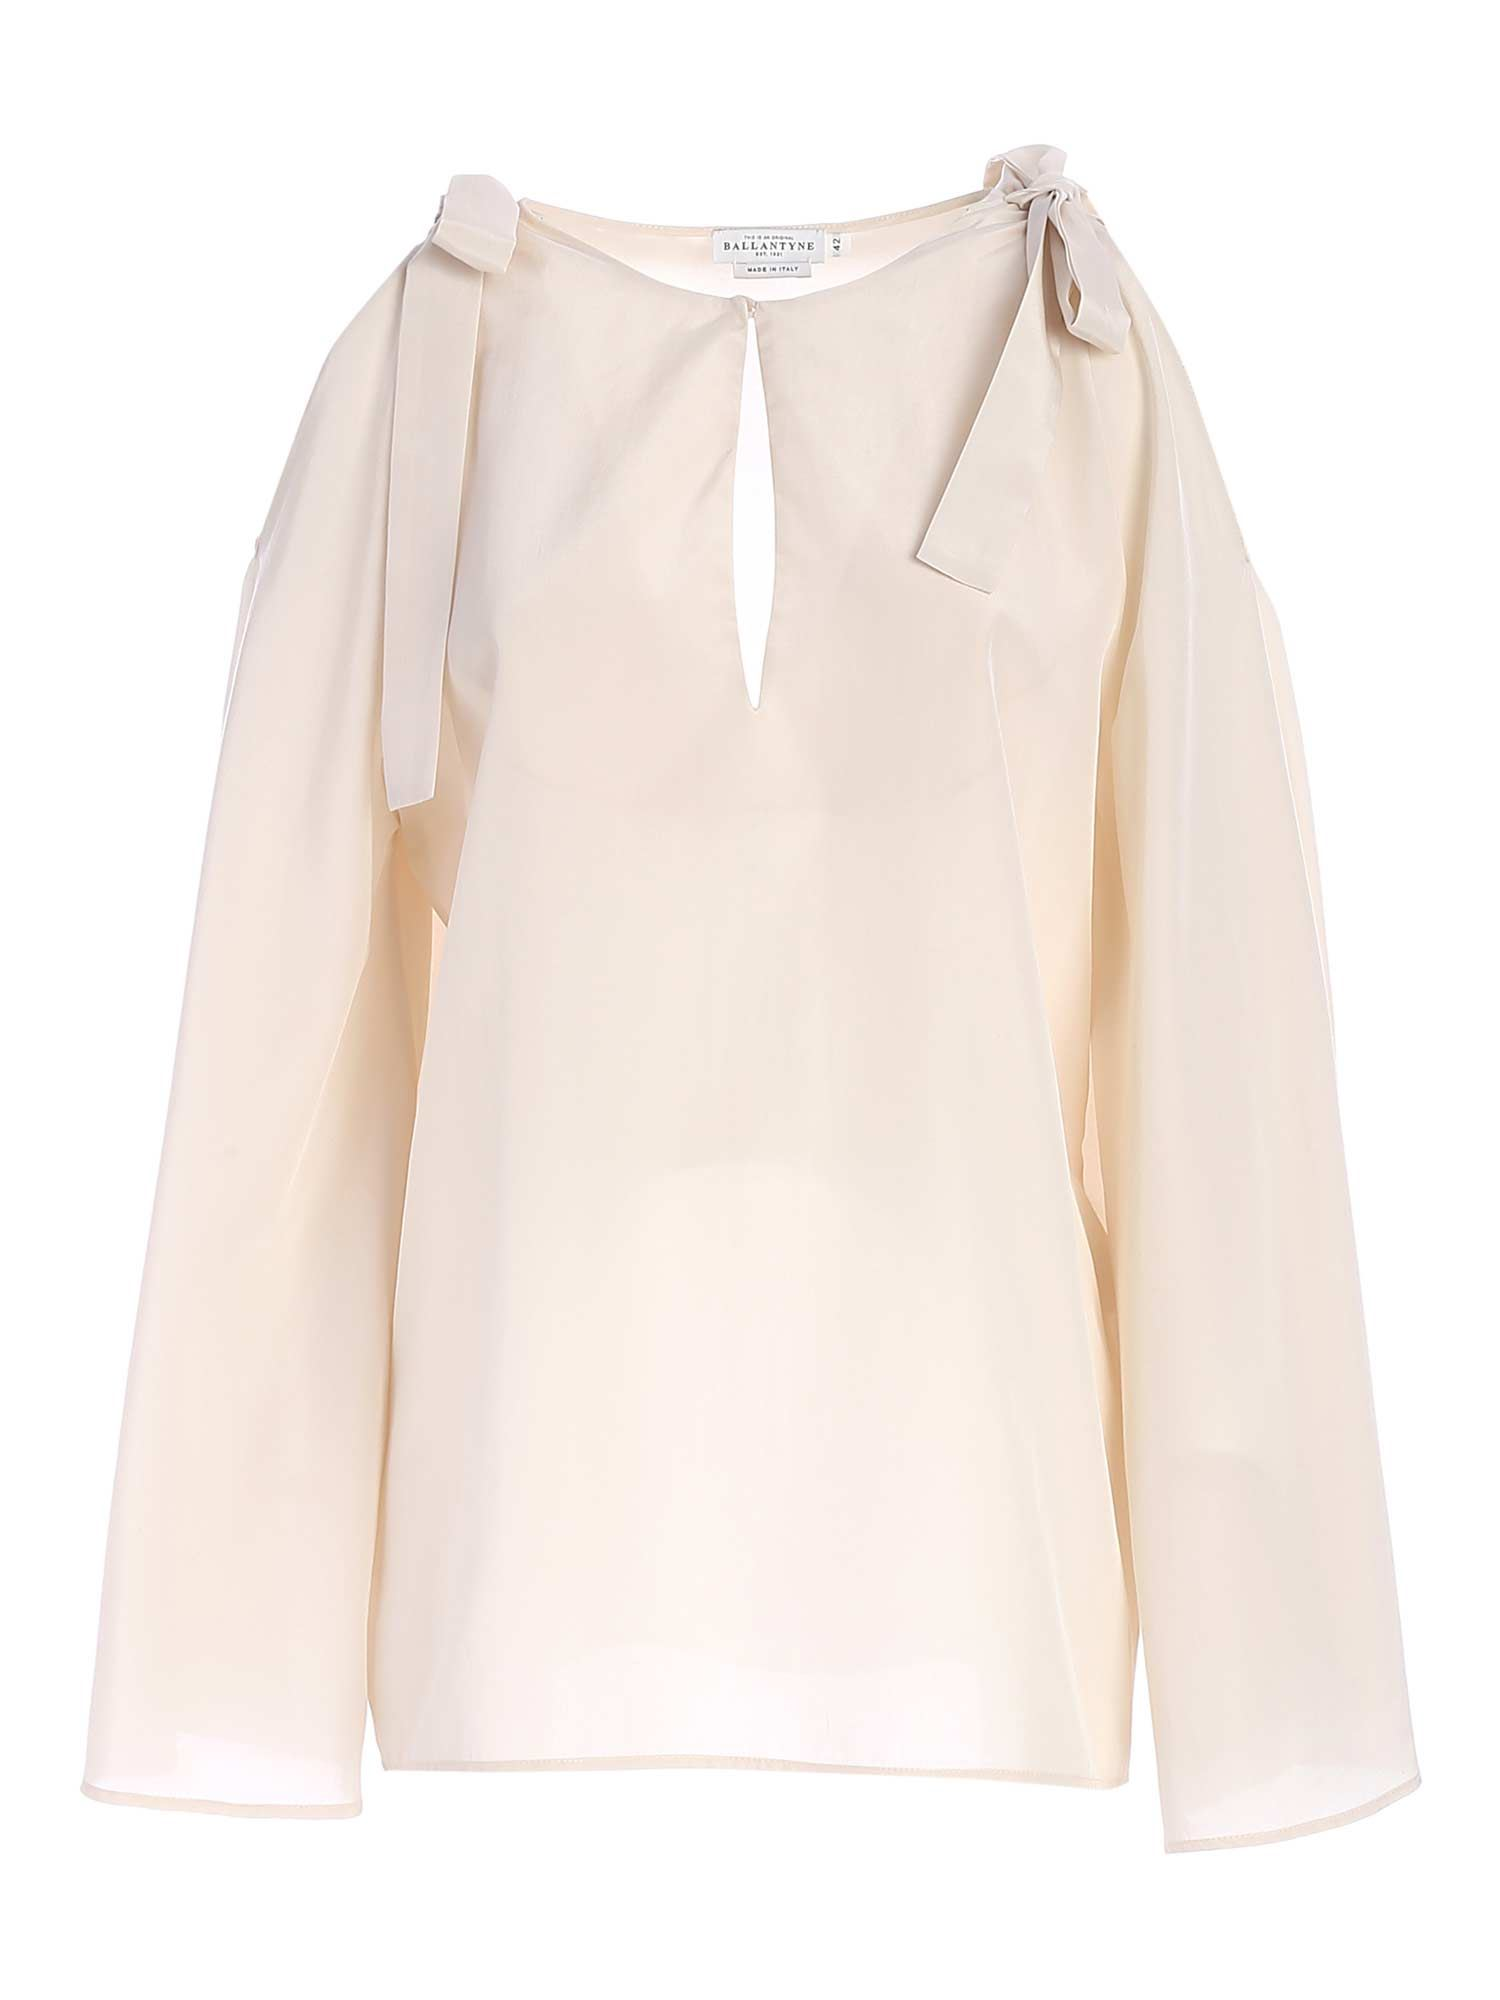 Ballantyne BOWS BLOUSE IN WHITE